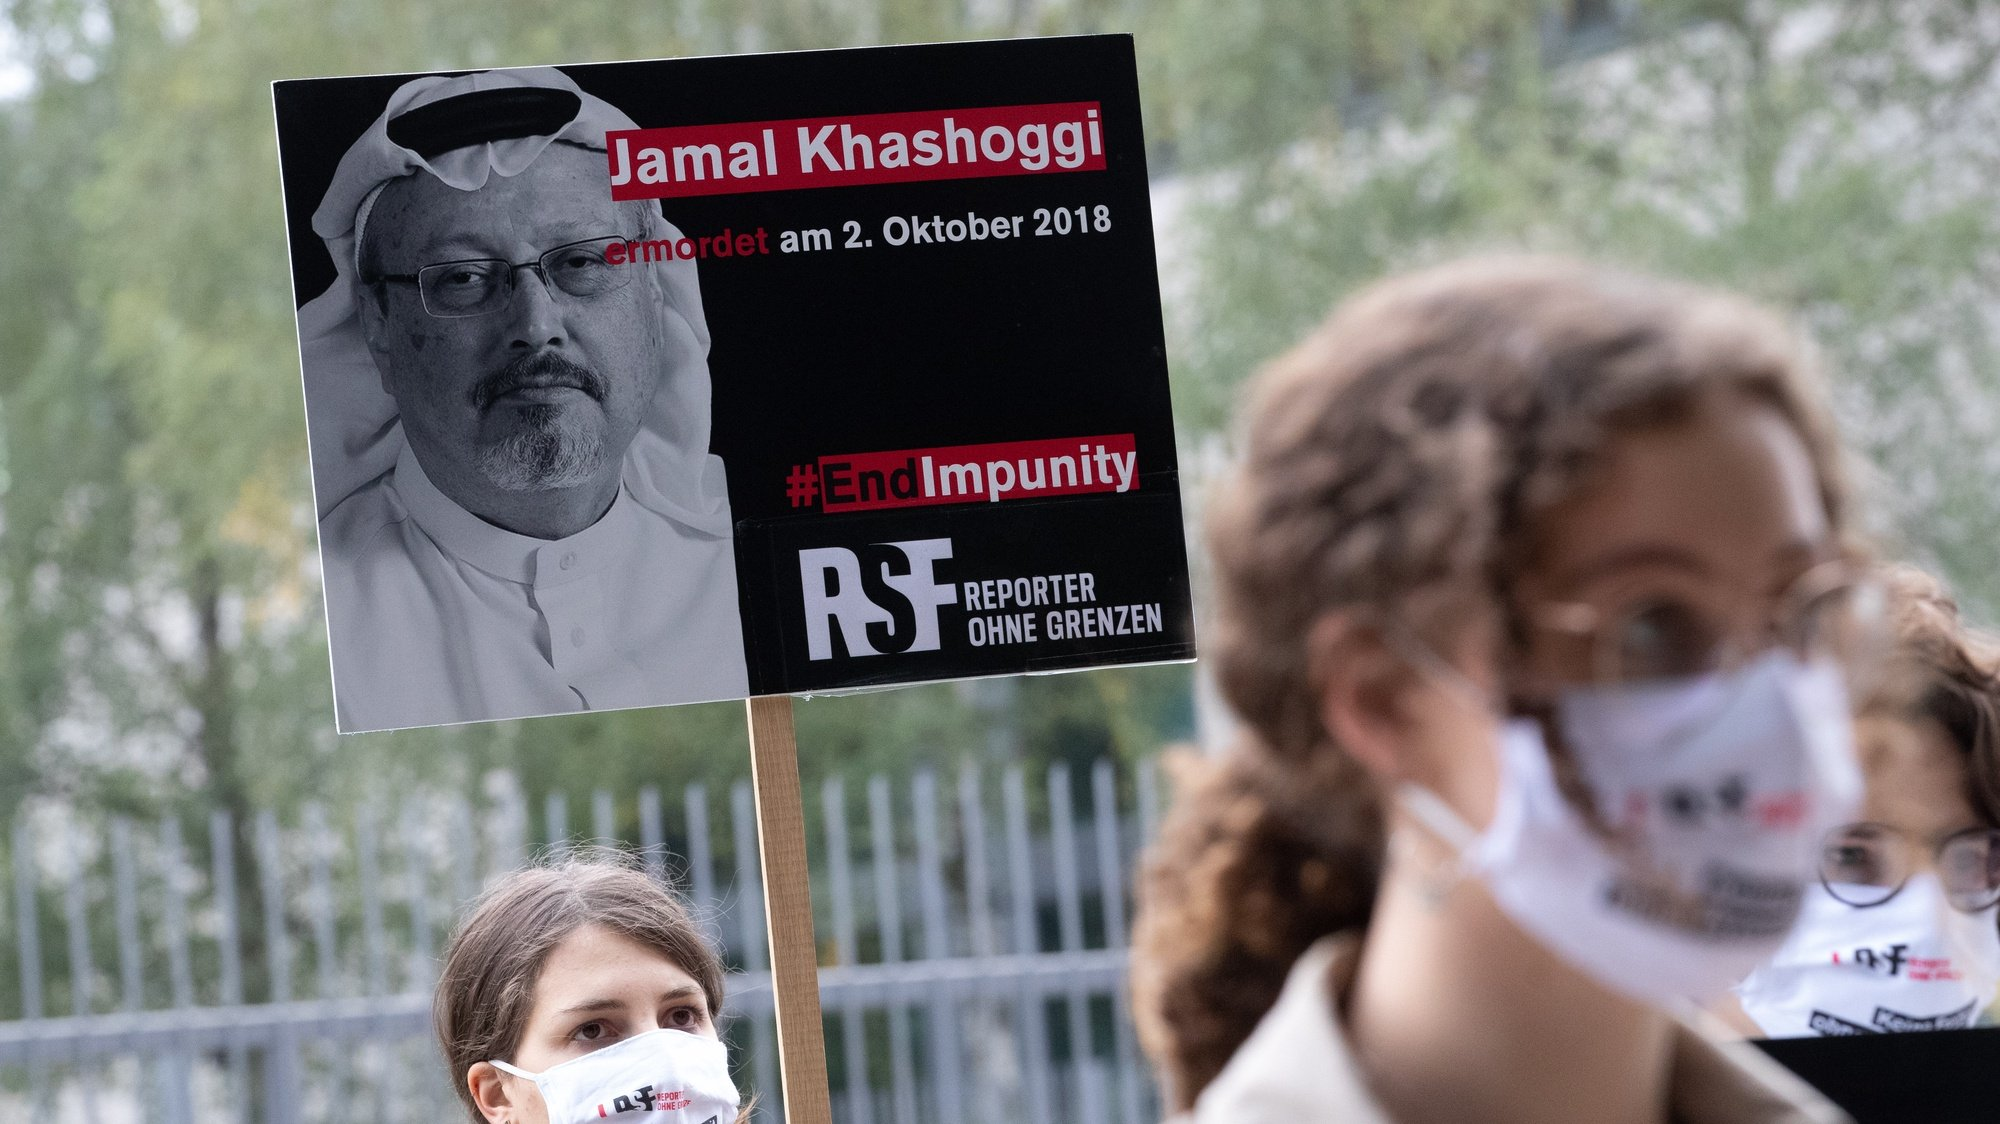 epa08715161 People holding placards reading 'Jamal Khashoggi assasinated 2 October 2018, #EndImpunity' participate in a vigil for the second anniversary of the murdered Saudi journalist Jamal Khashoggi in front of the Saudi-Arabian embassy in Berlin, Germany, 02 October 2020. Washington Post columnist Jamal Khashoggi was killed while visiting the Saudi consulate in Istanbul, Turkey on 02 October 2018 to do a routine paperwork. Three of a total of 11 suspects were given jail sentences of 24 years in total.  EPA/HAYOUNG JEON